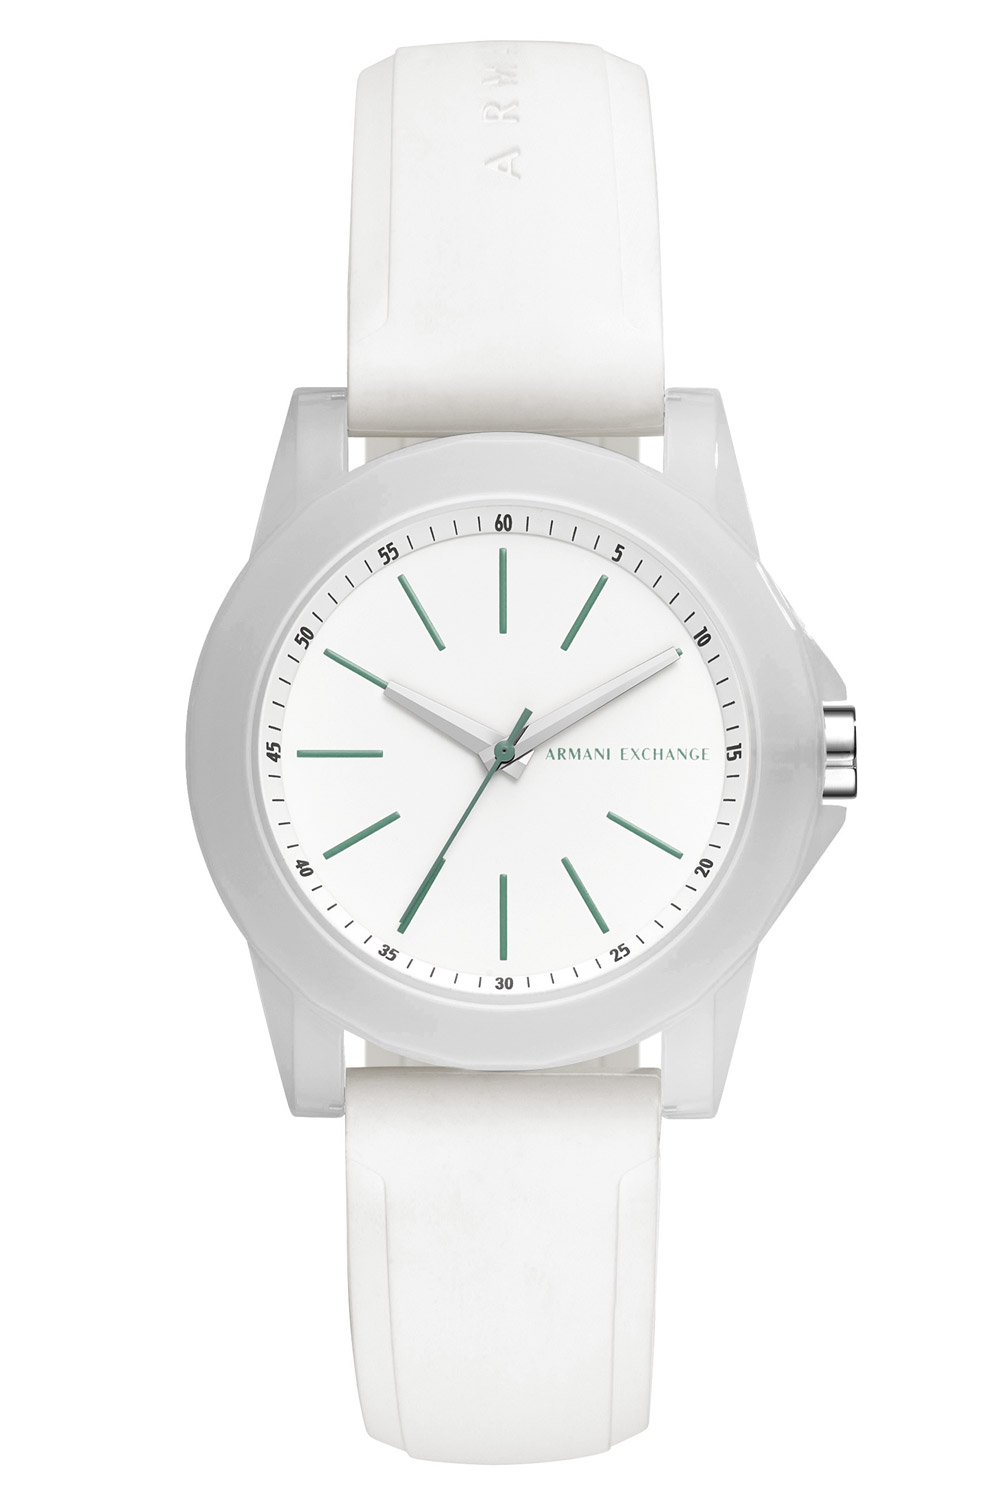 c92608f46b3384 Women s Watches with Silicone Strap at low prices Page 5 • uhrcenter